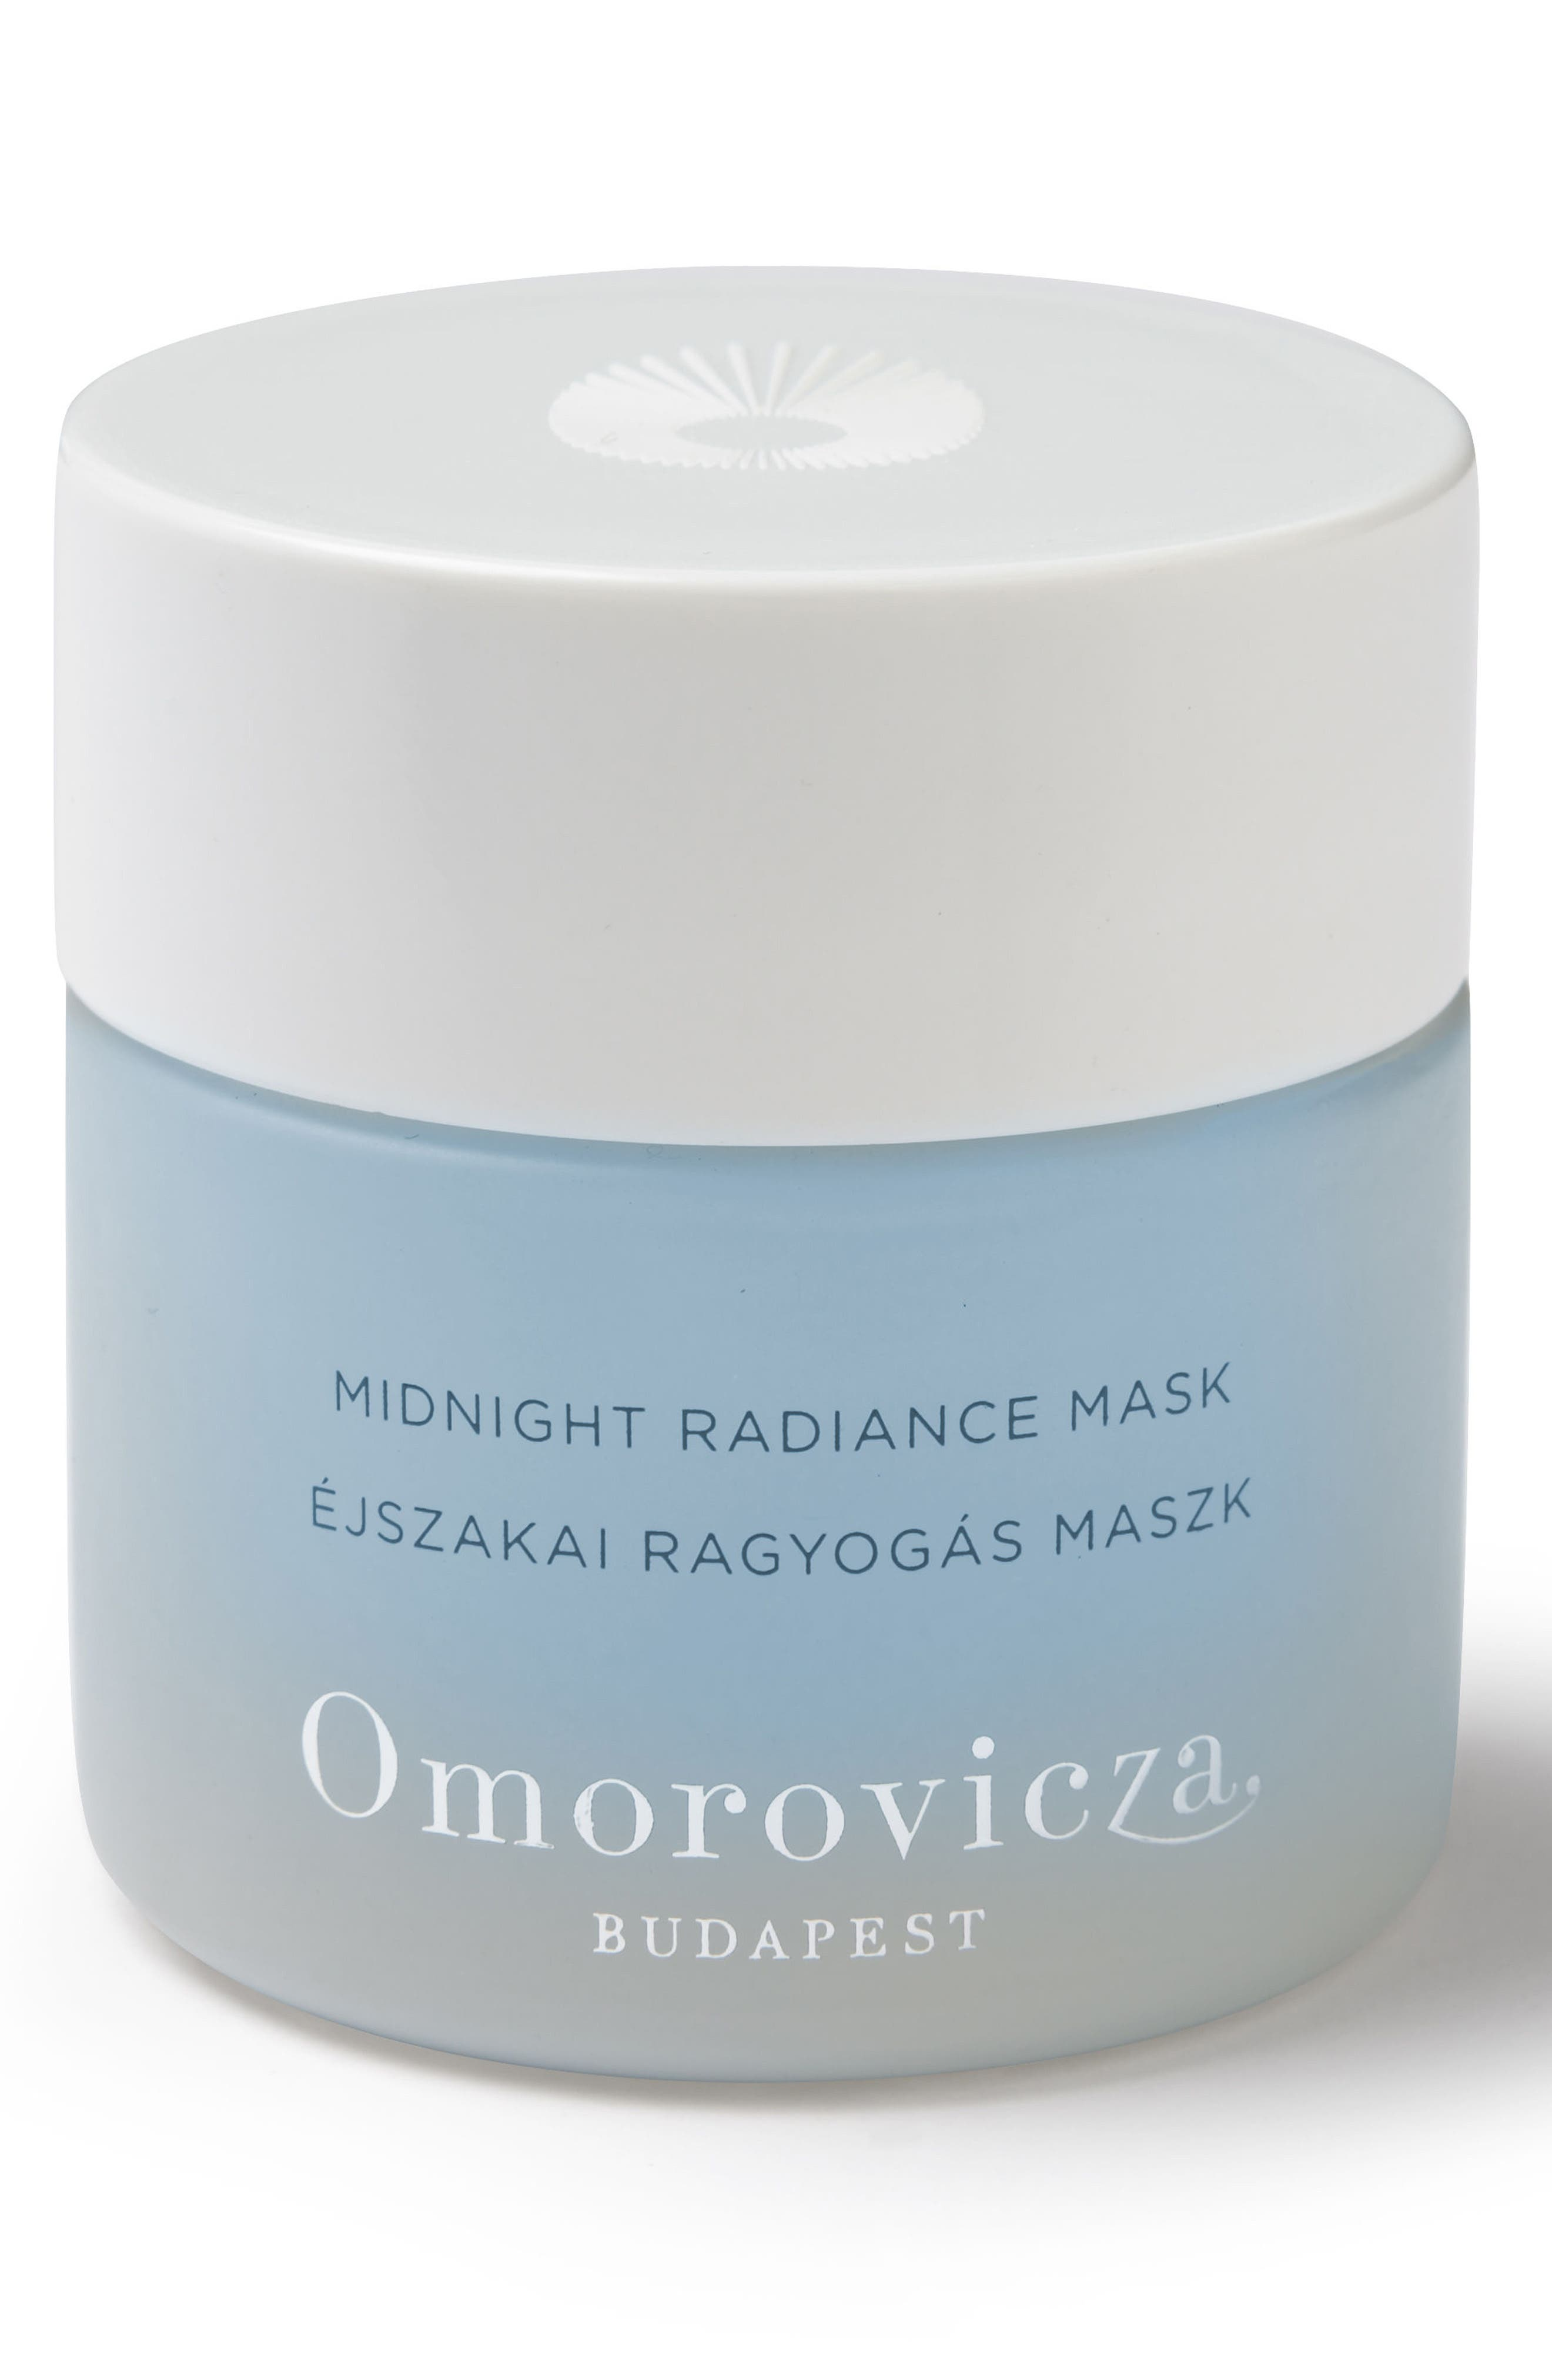 Midnight Radiance Mask,                             Main thumbnail 1, color,                             NO COLOR